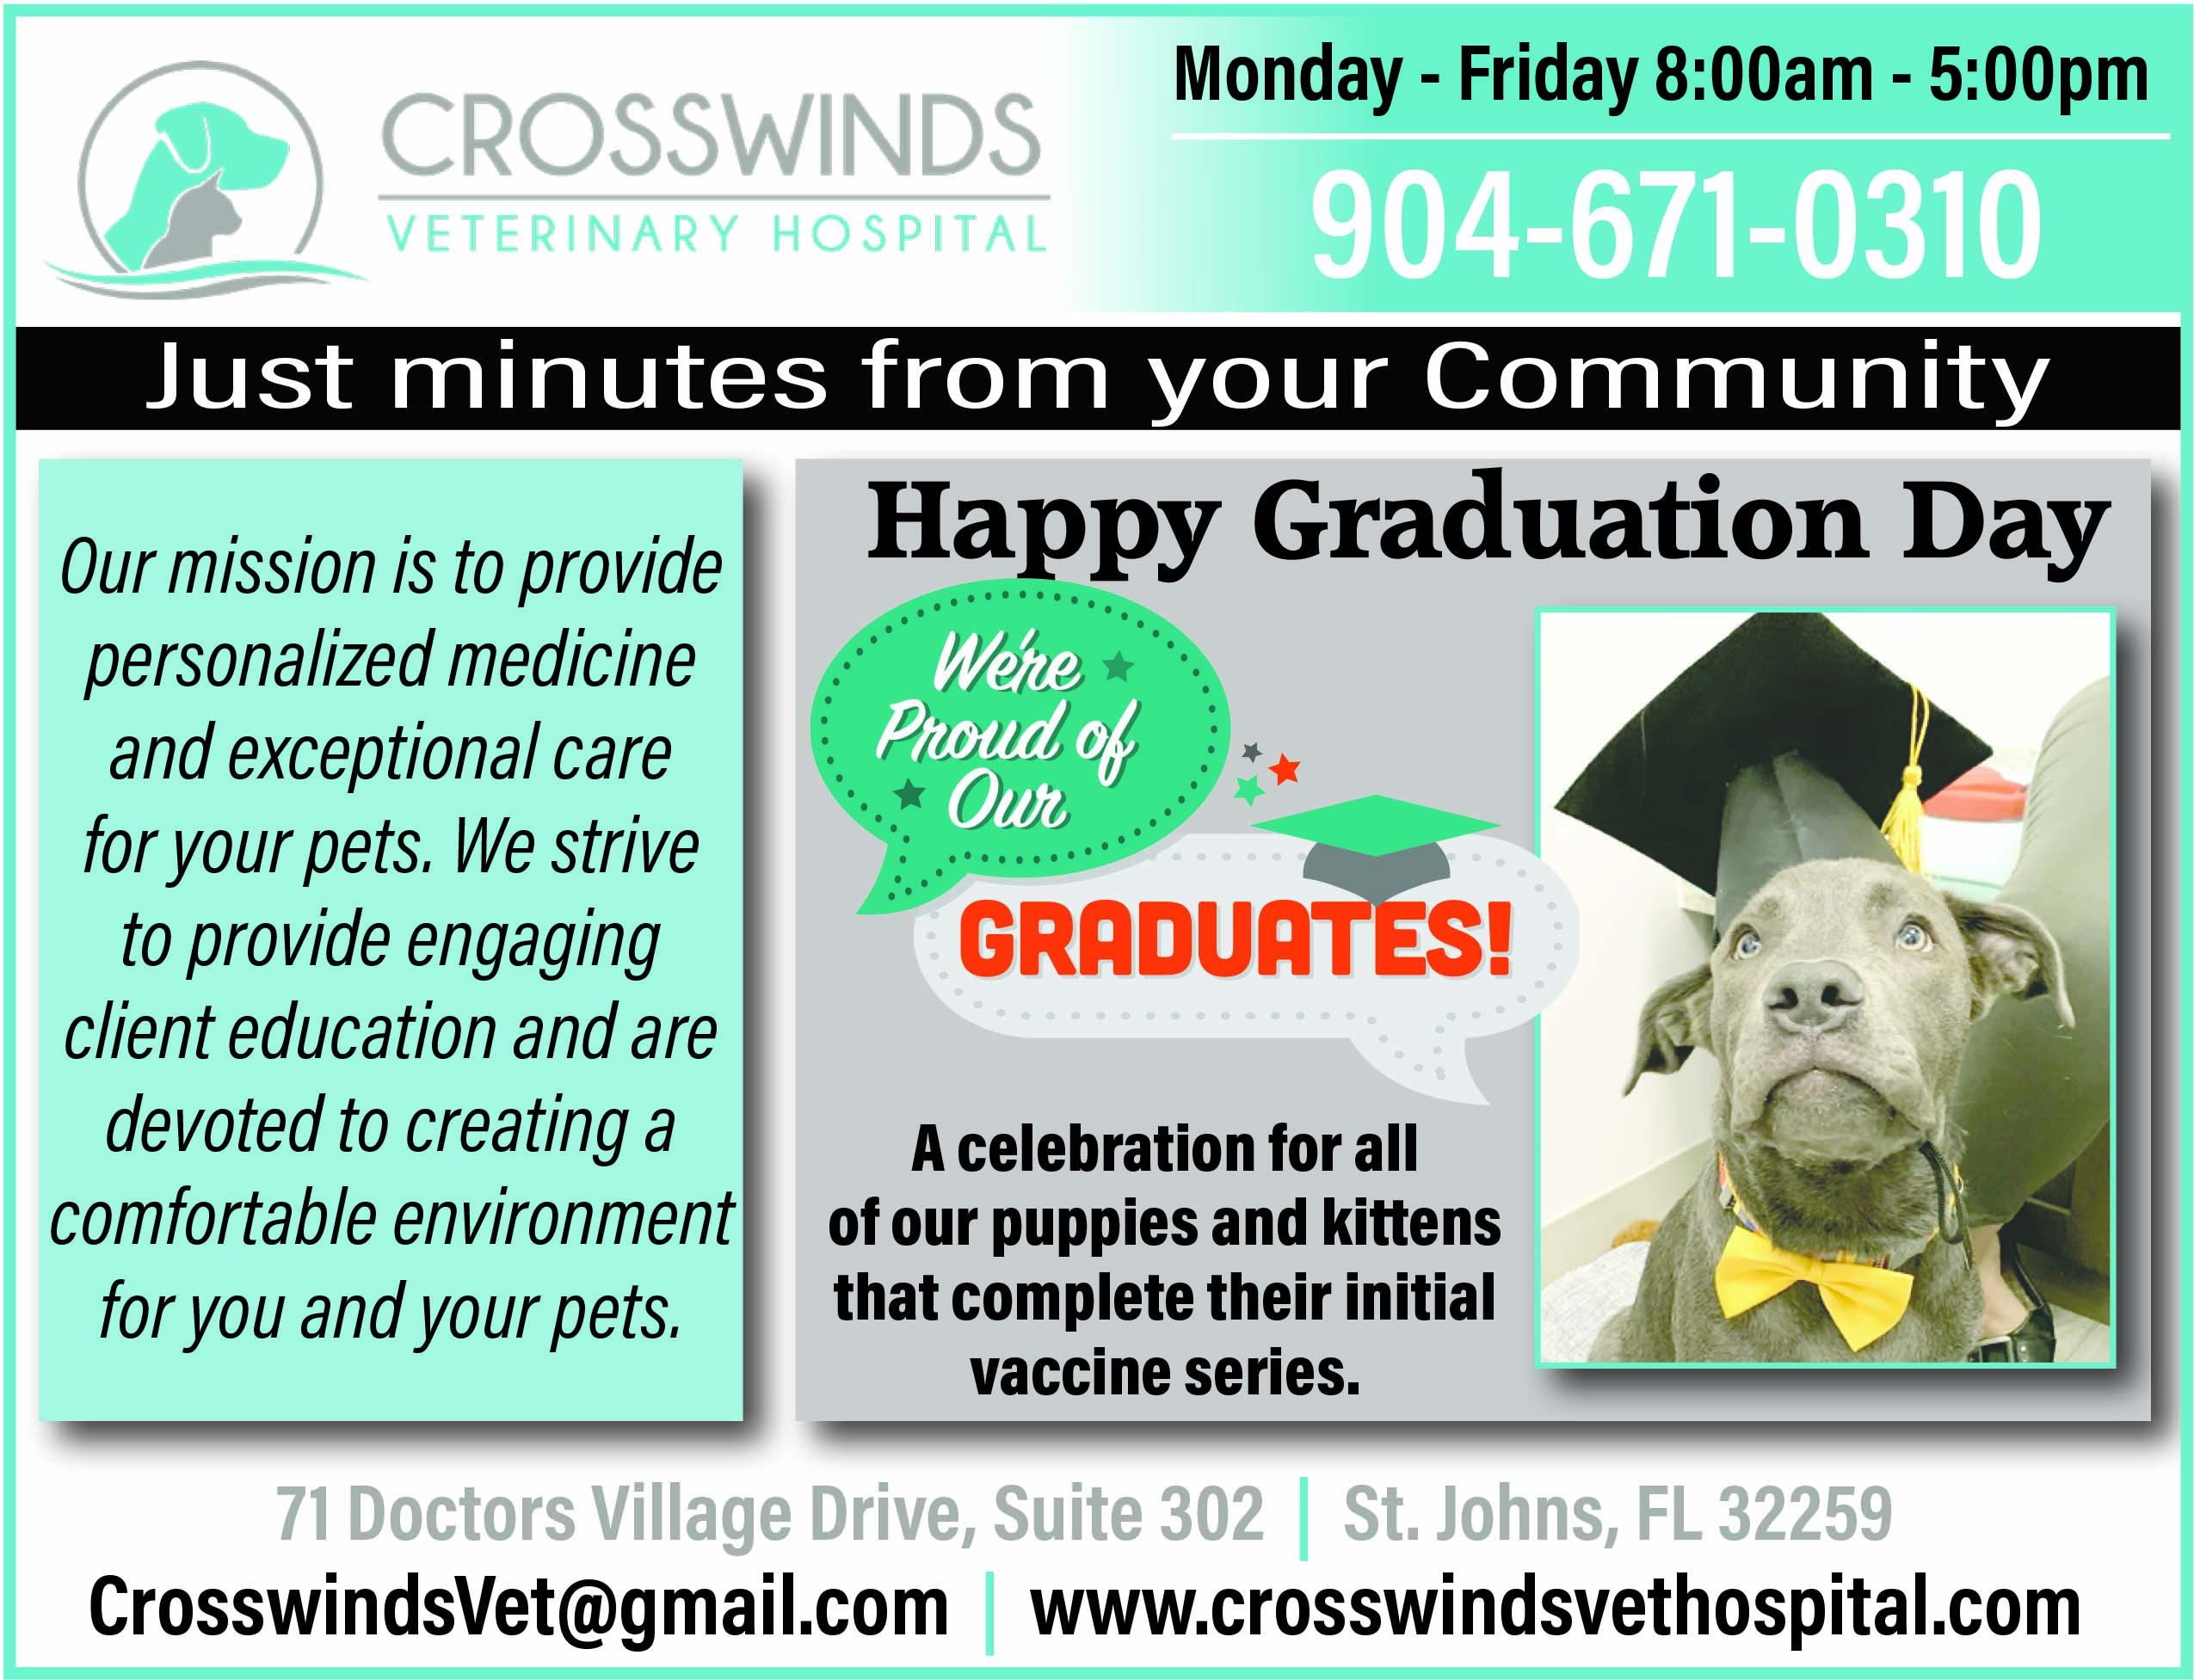 Crosswinds Veterinary Hospital. Preventative Medicine and wellness, Surgery, Dentistry, Labs and Imaging, Farm Animal Medicine, In-Patient and Emergency Care. Our mission is to provide personalized medicine and exceptional care for your pets. We strive to provide engaging client education and are devoted to creating a comfortable environment for you and your pets. Call us 904 671 0310, Crosswindsvet@gm,ail.com www.crosswindsvethostpital.com